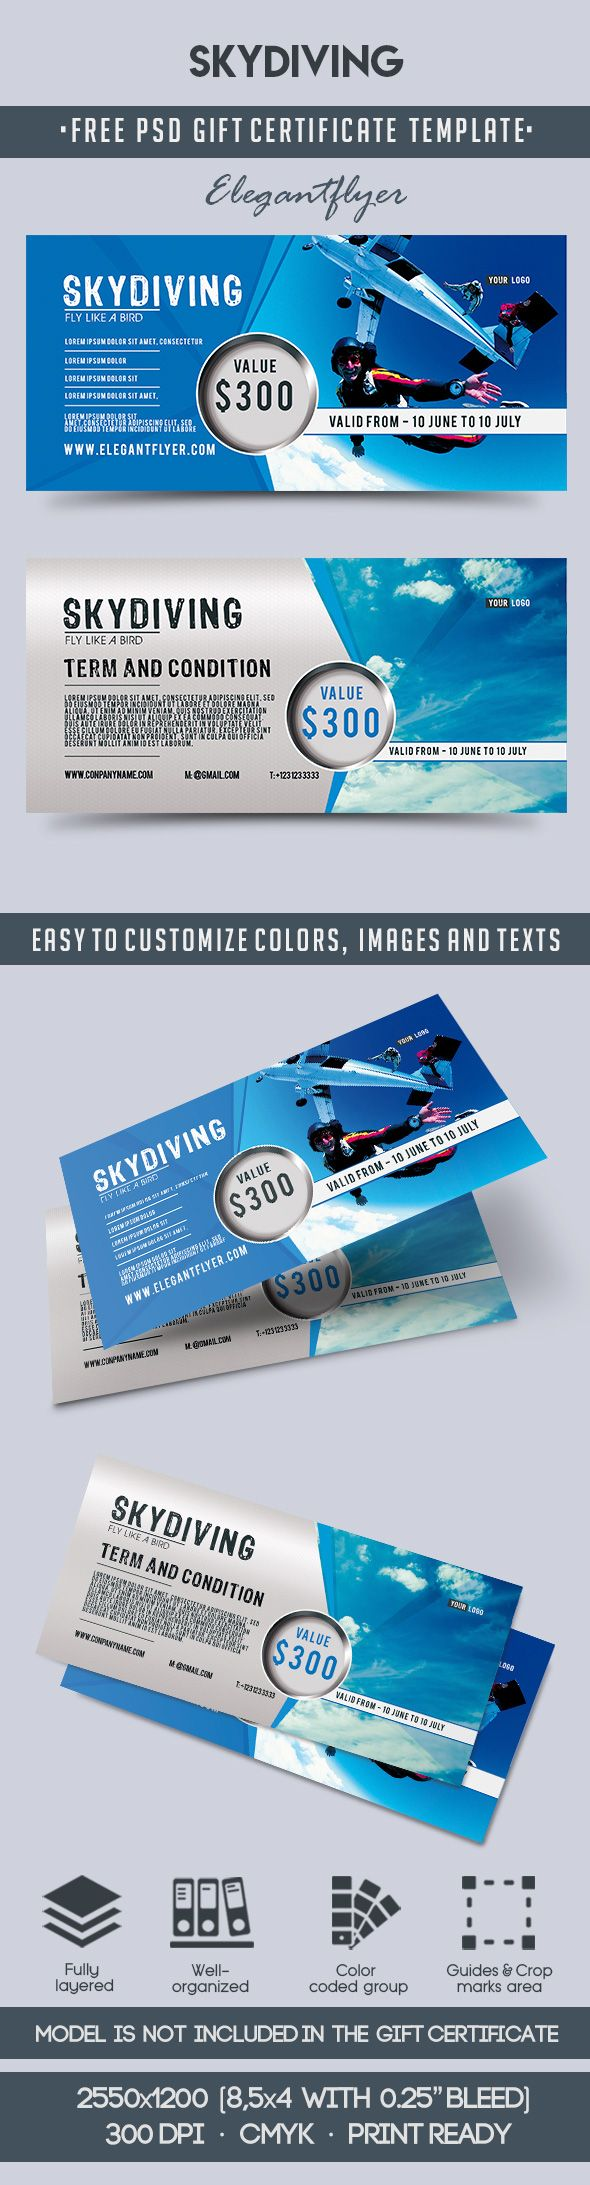 Skydiving – Free Gift Certificate PSD Template